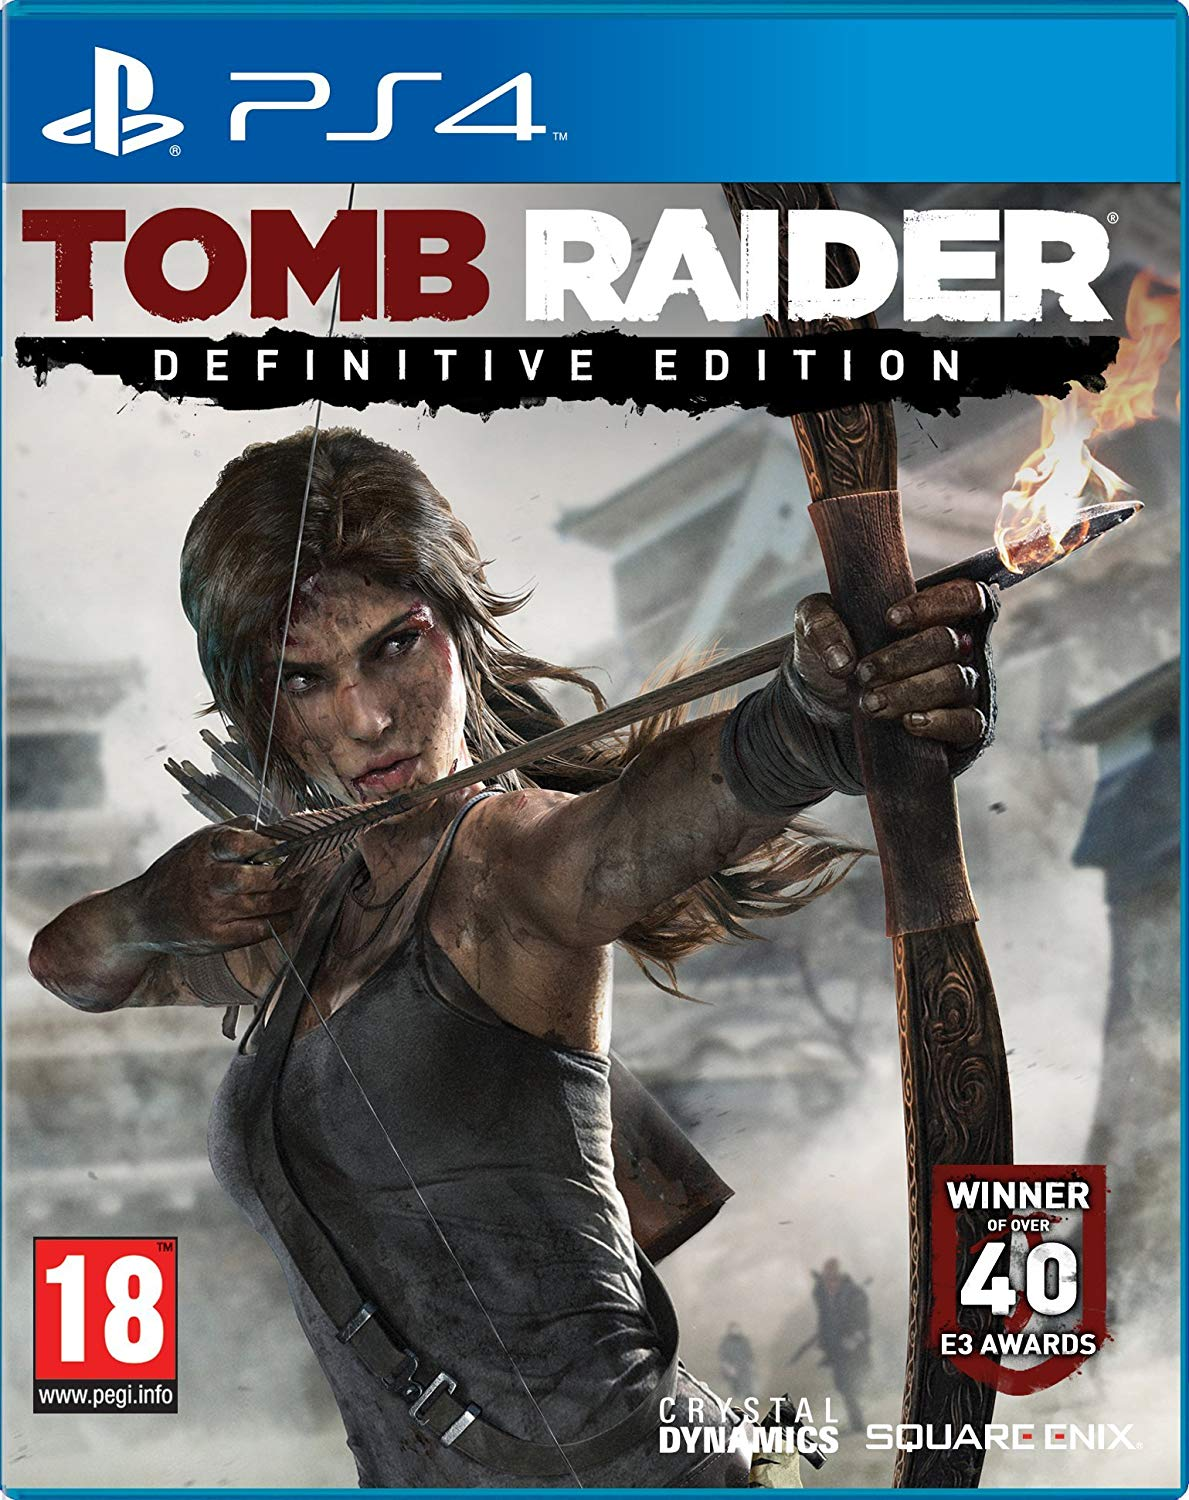 TOMB RAIDER – THE DEFINITIVE EDITION - PS4